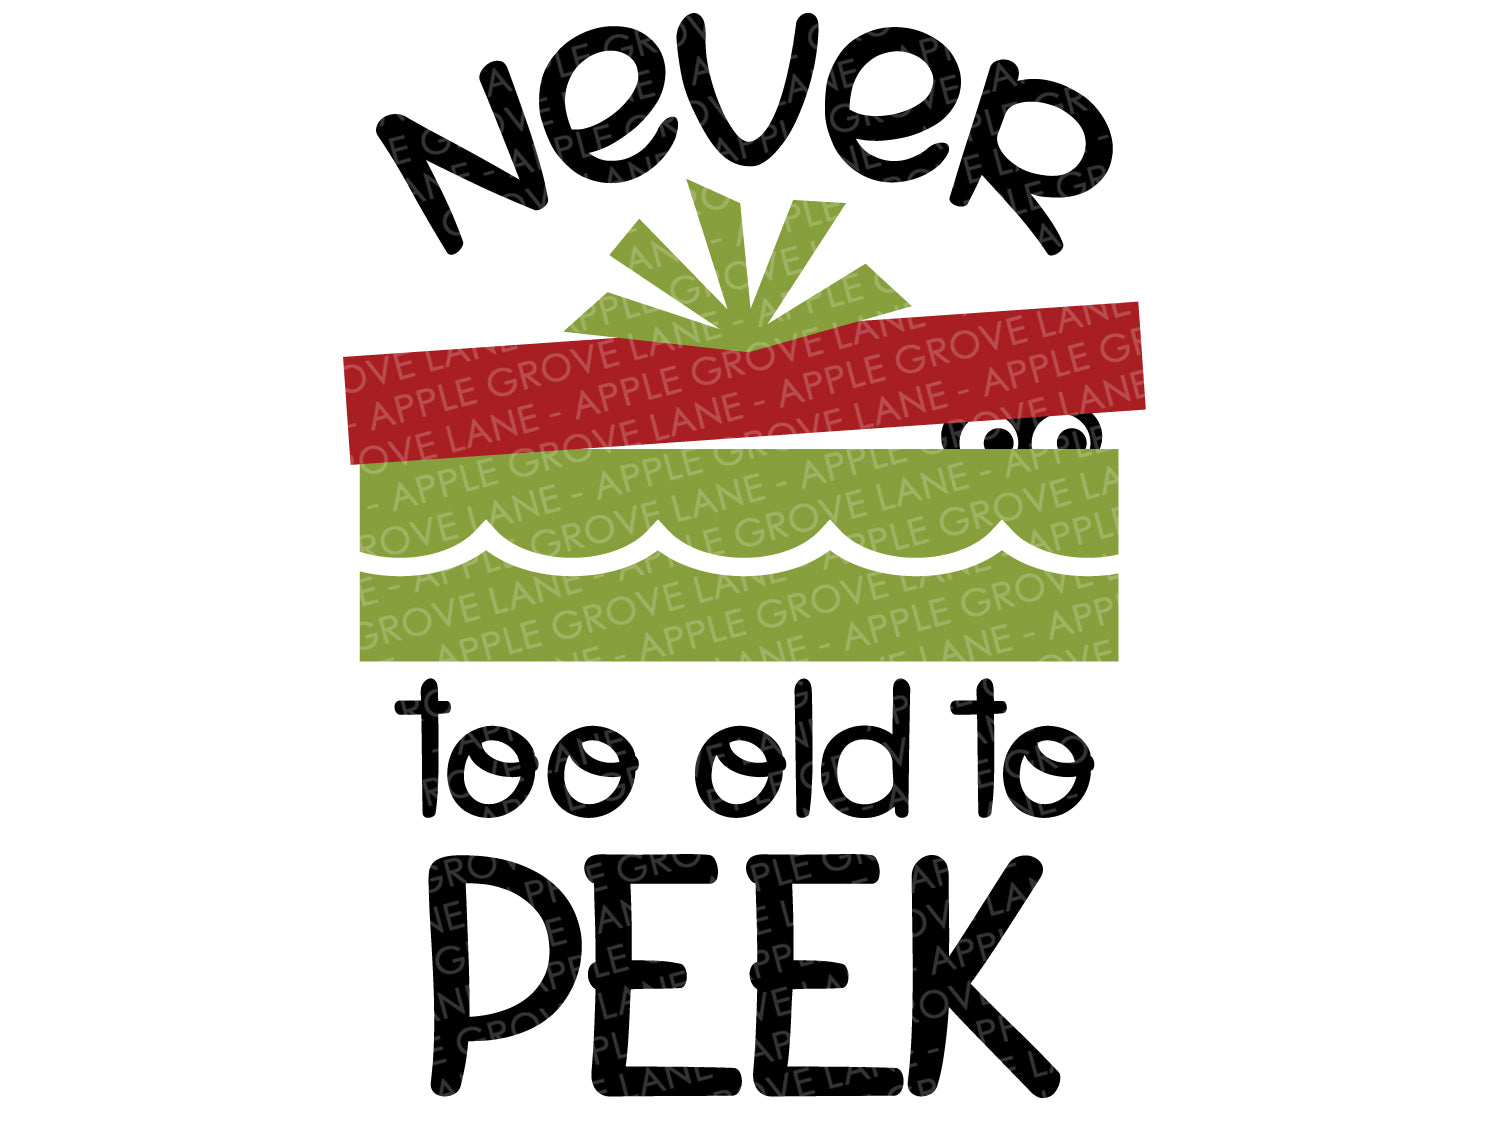 Never Too Old SVG - Peeking Christmas Svg - Peeking Svg - Christmas Svg - Present Svg - Peek SVG - Christmas Clip Art - Svg Eps Png Dxf